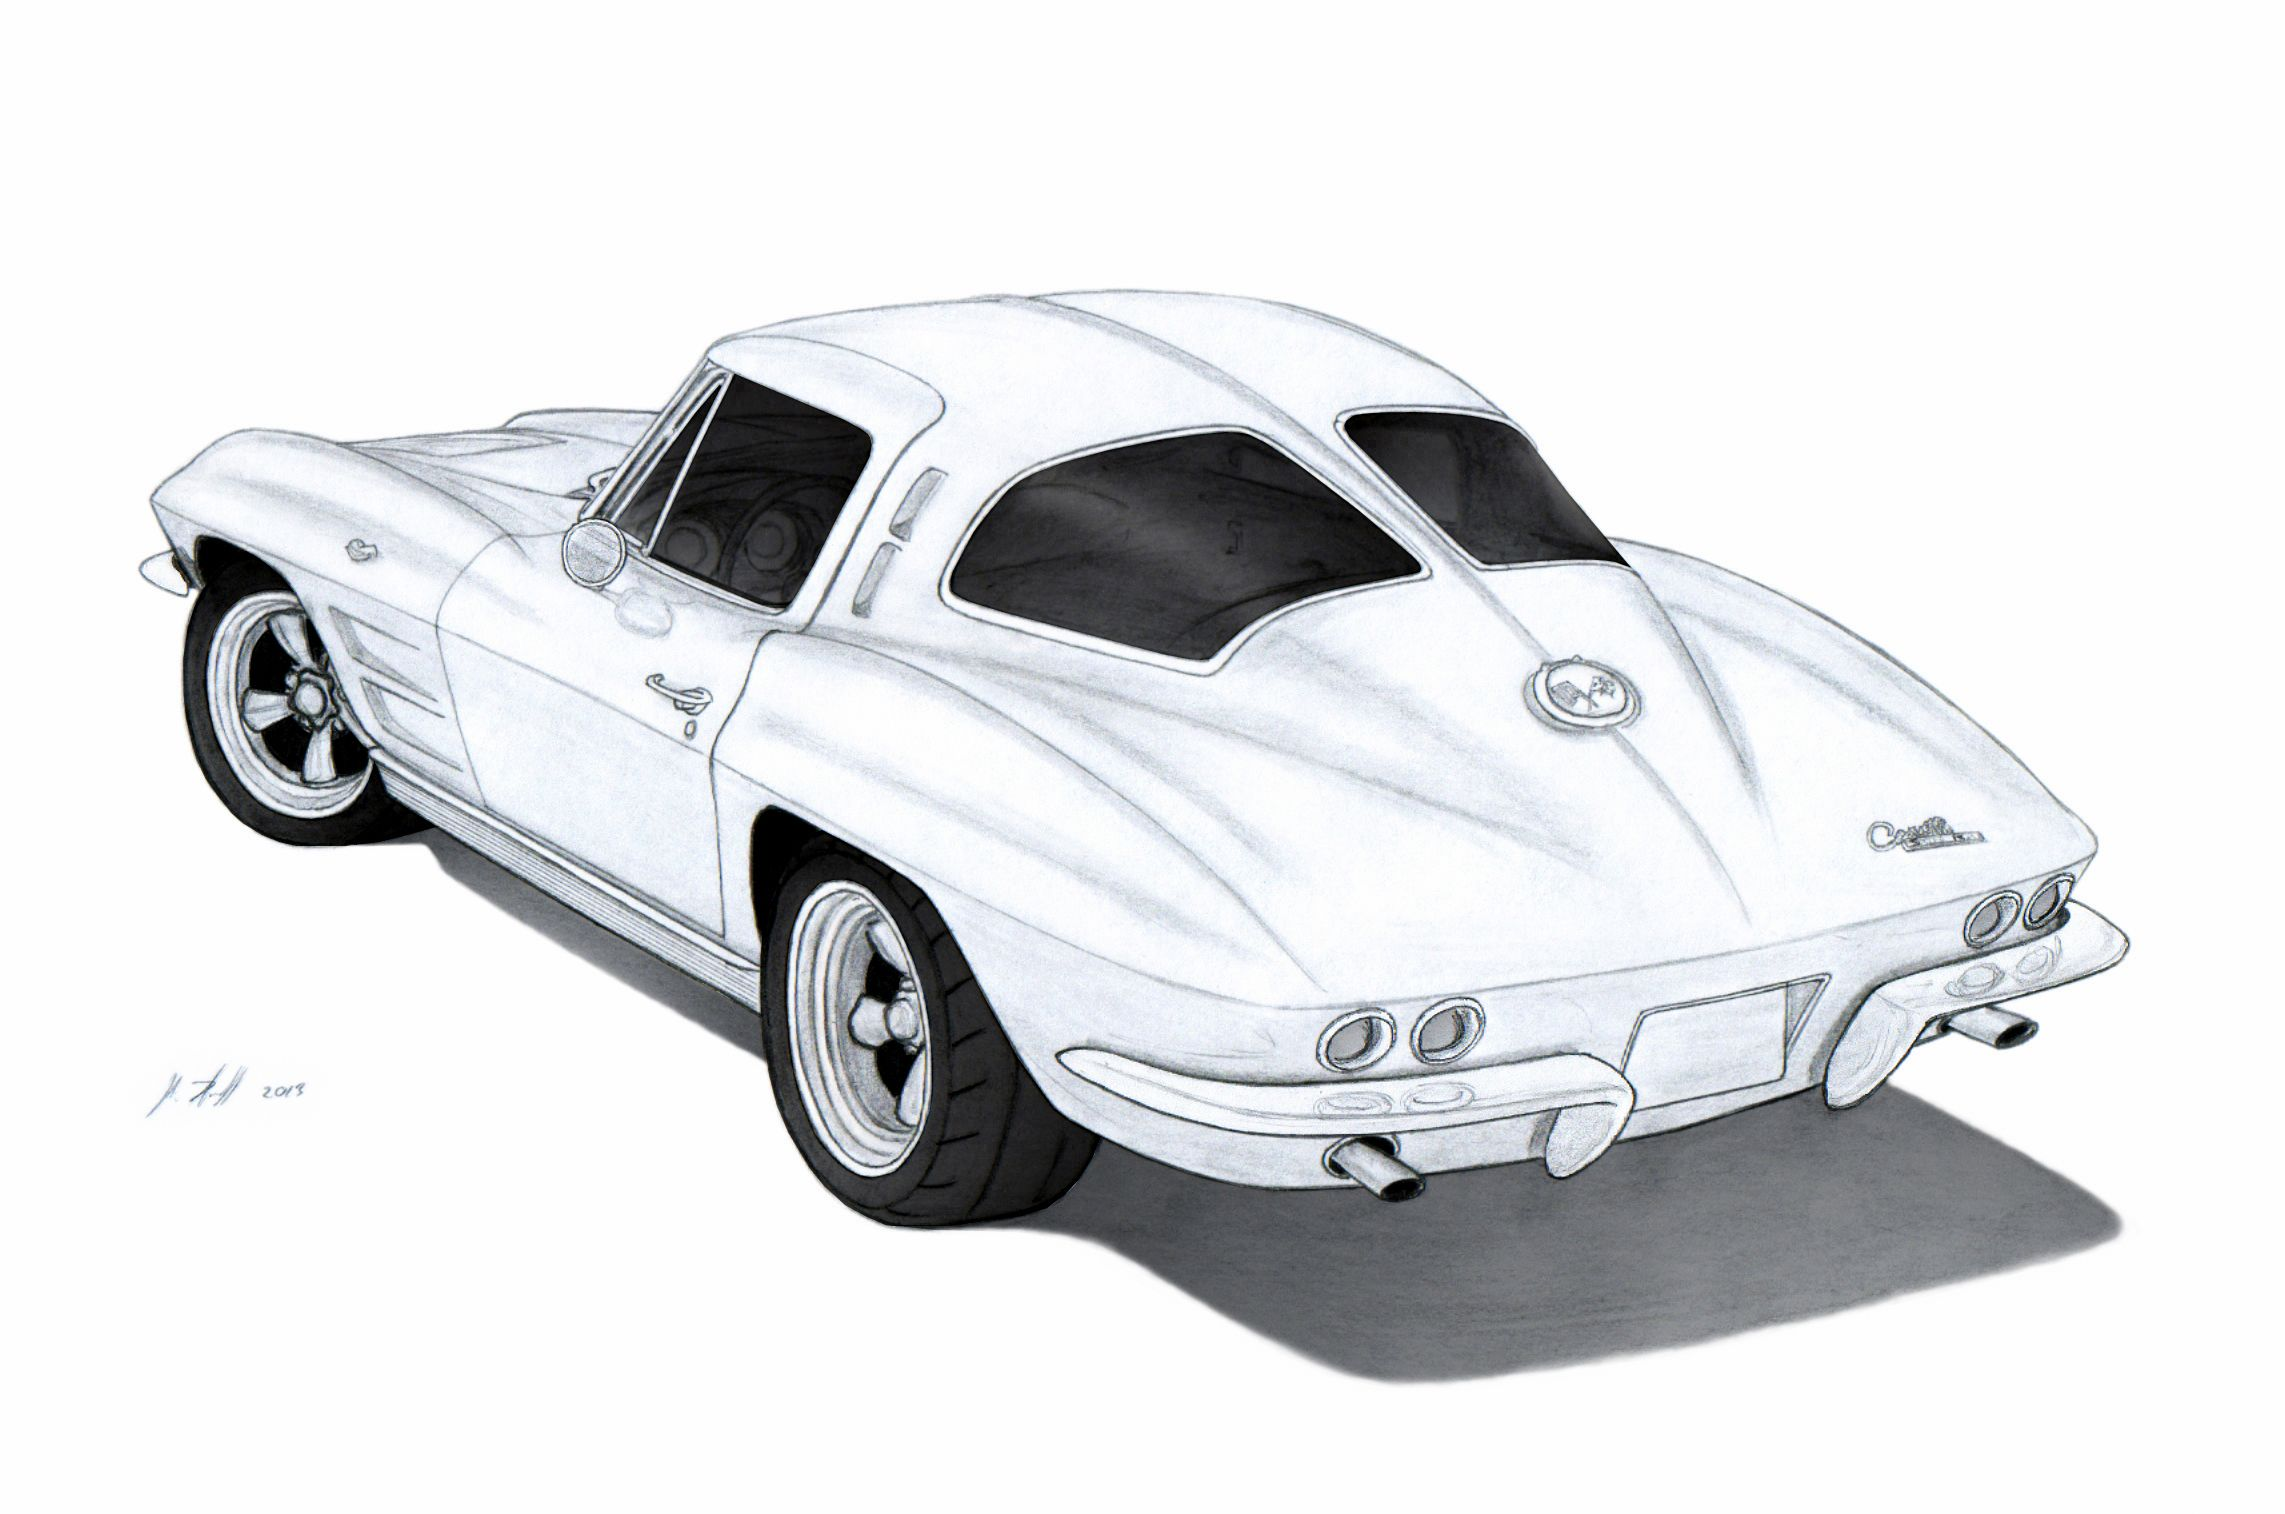 1963 Chevrolet Corvette Sting Ray (C2) Drawing by Vertualissimo ...